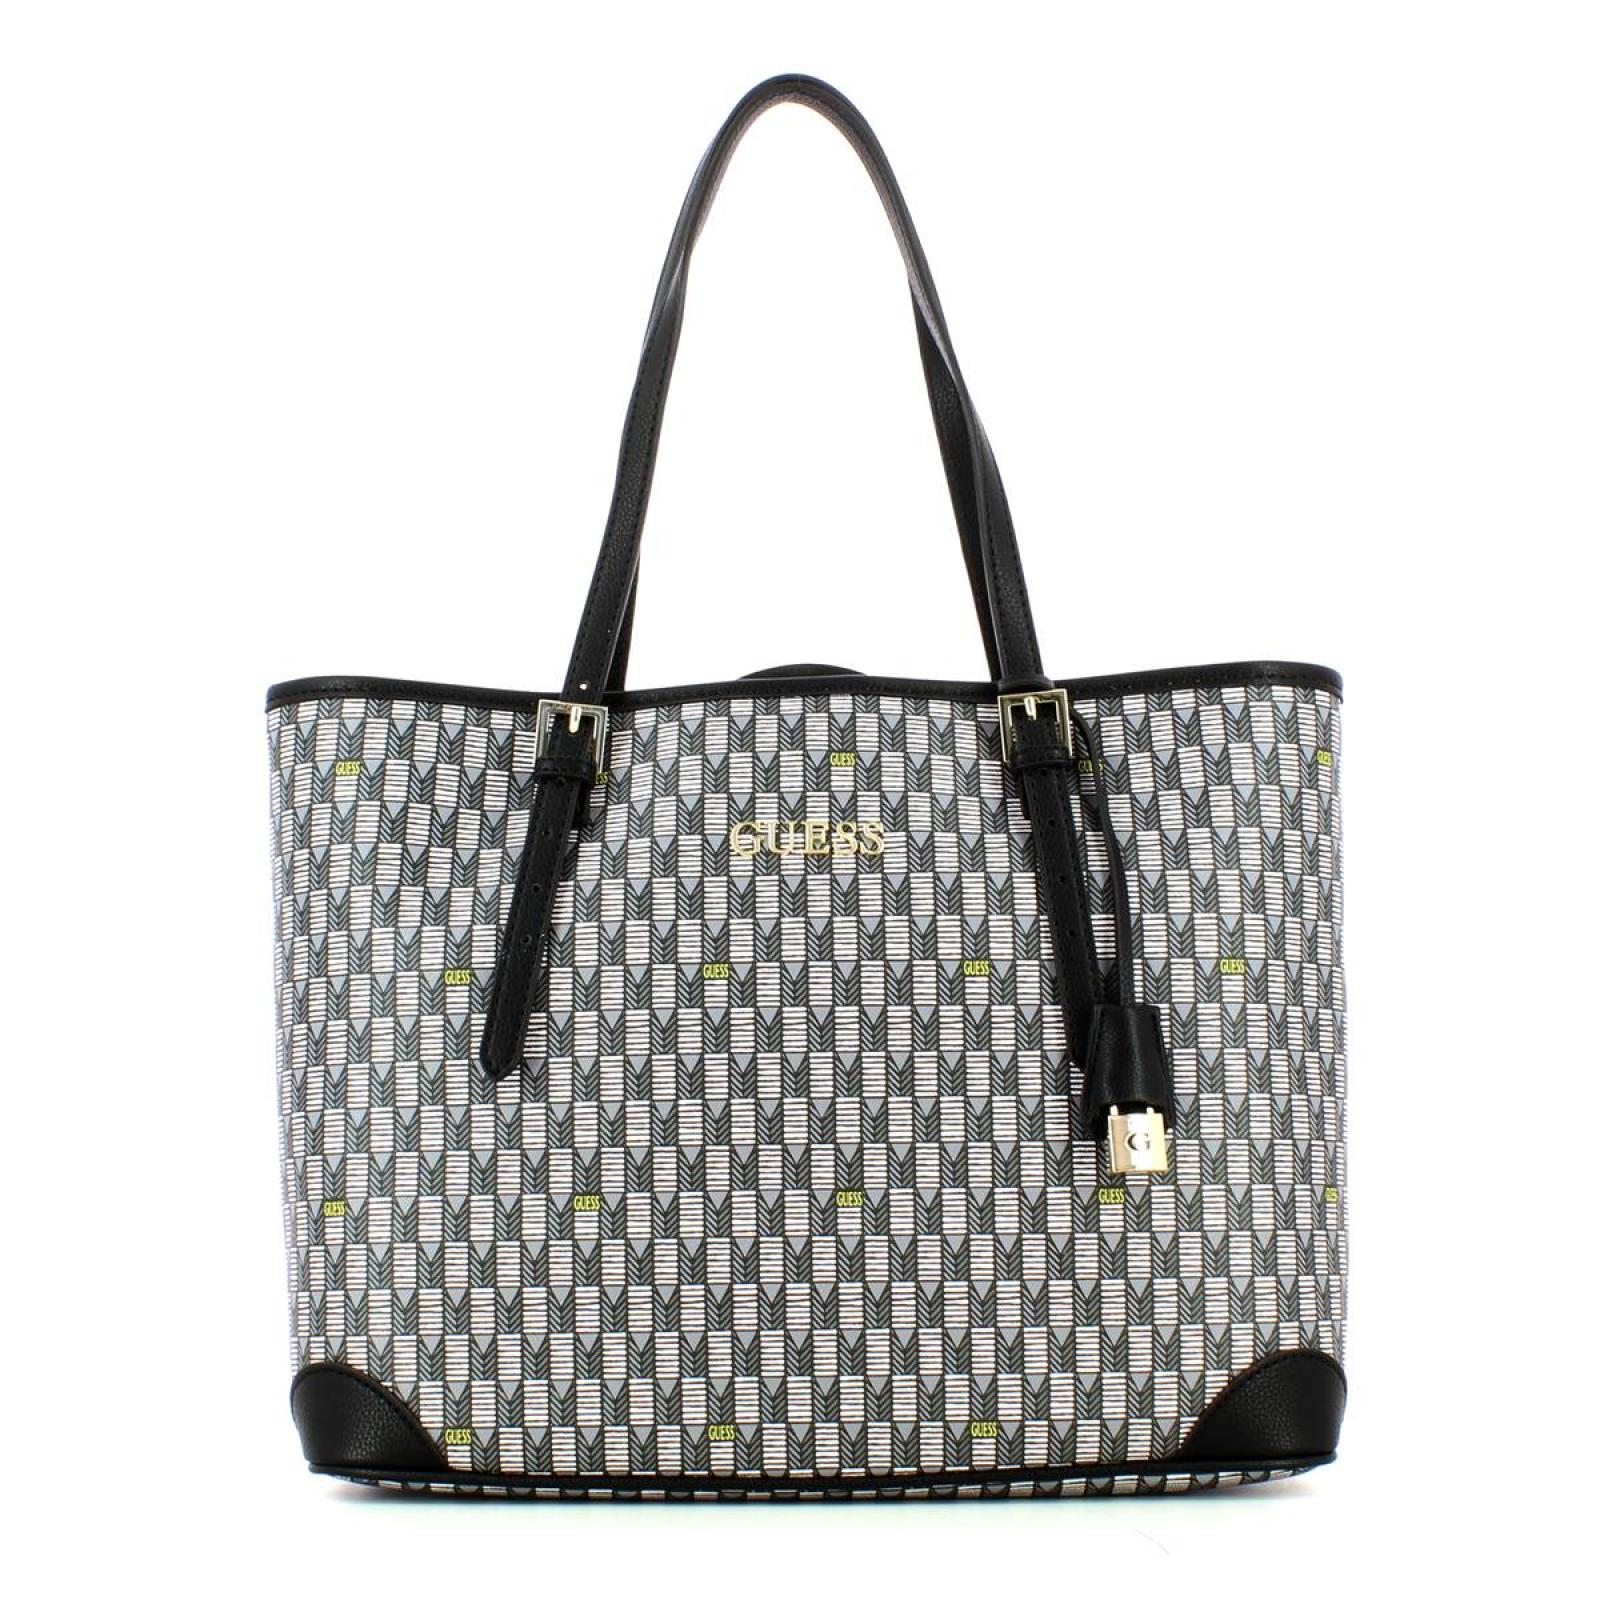 Jetset Gia Medium Shopper